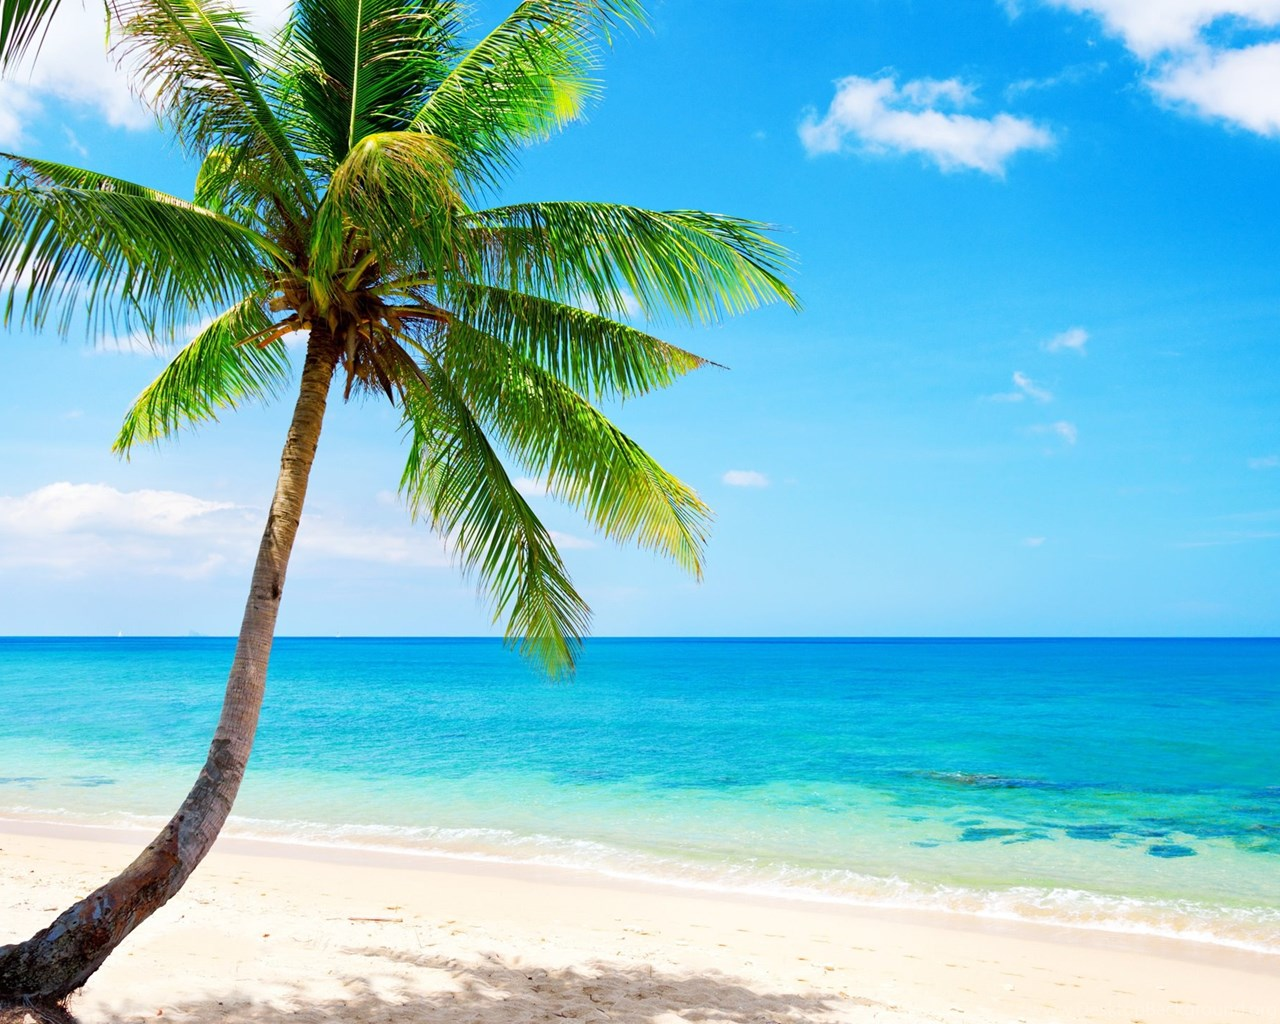 10 Best Tropical Beach Desktop Backgrounds Full Hd 1920: Lonely Palm Tree, Tropical, Beach, Coast, Sea Wallpapers